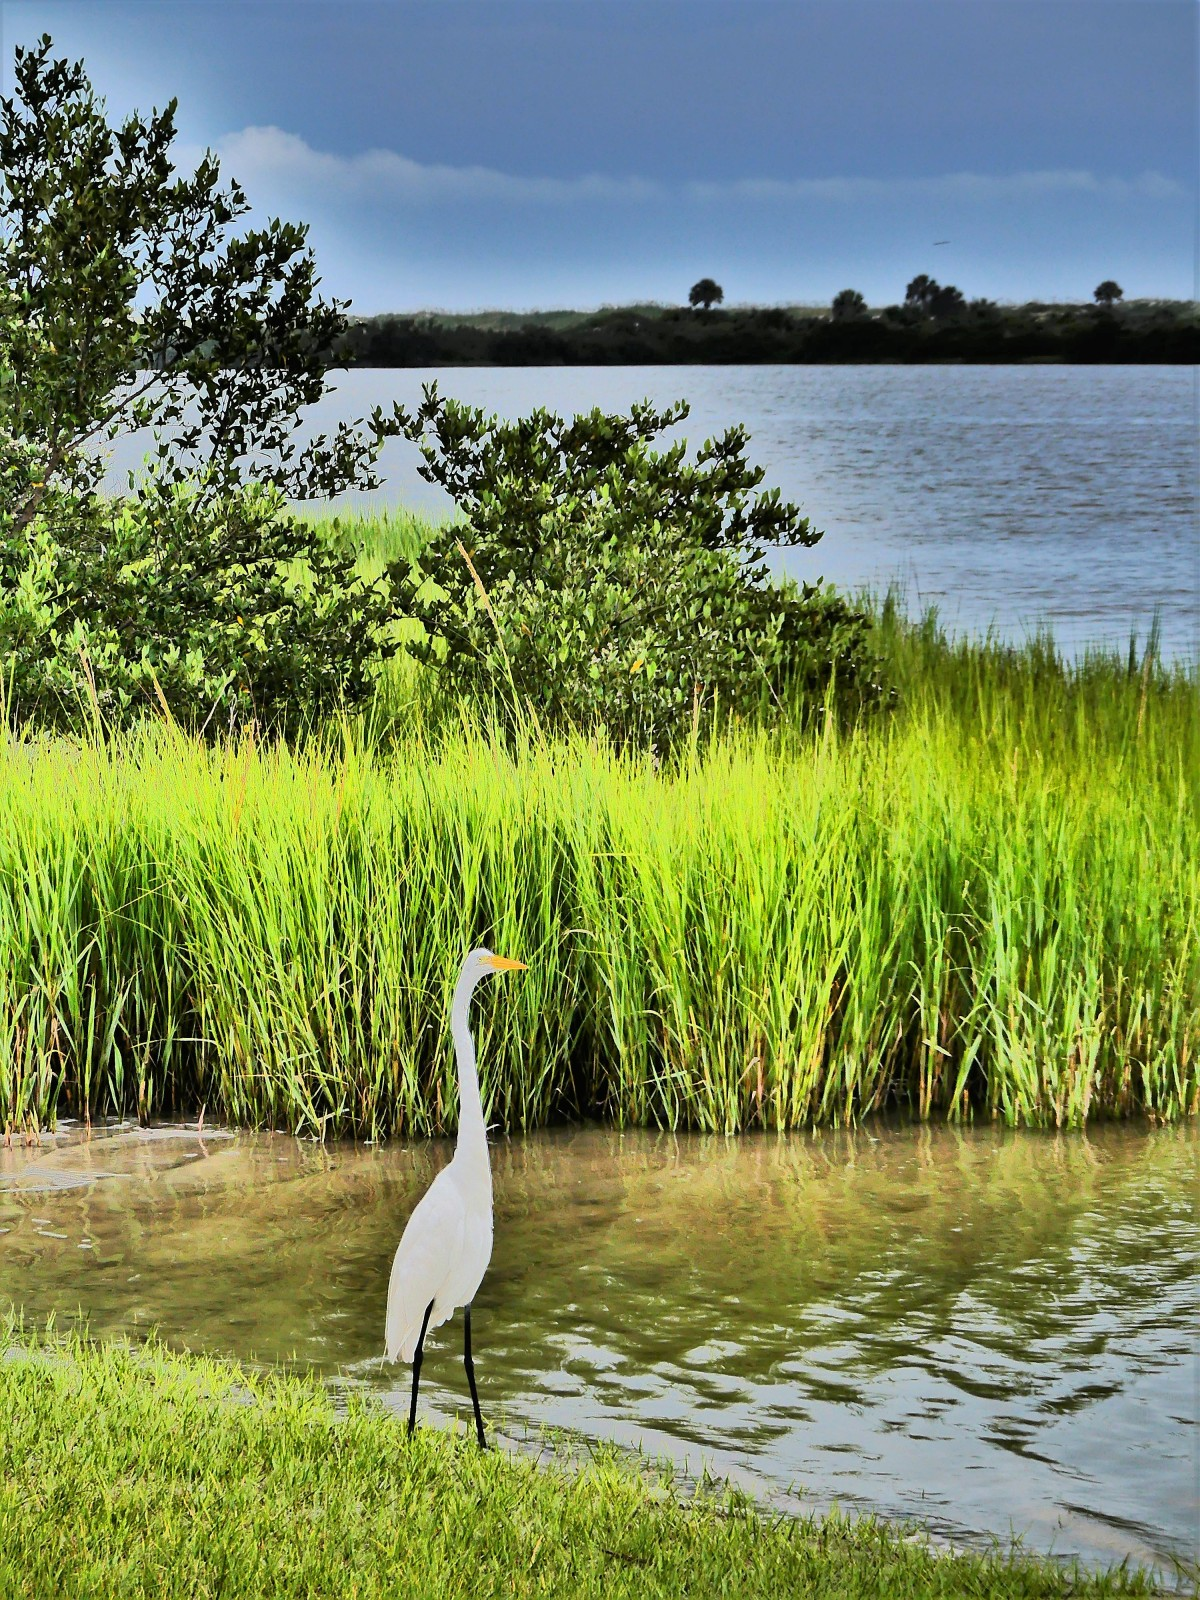 egret on the shore1.jpg